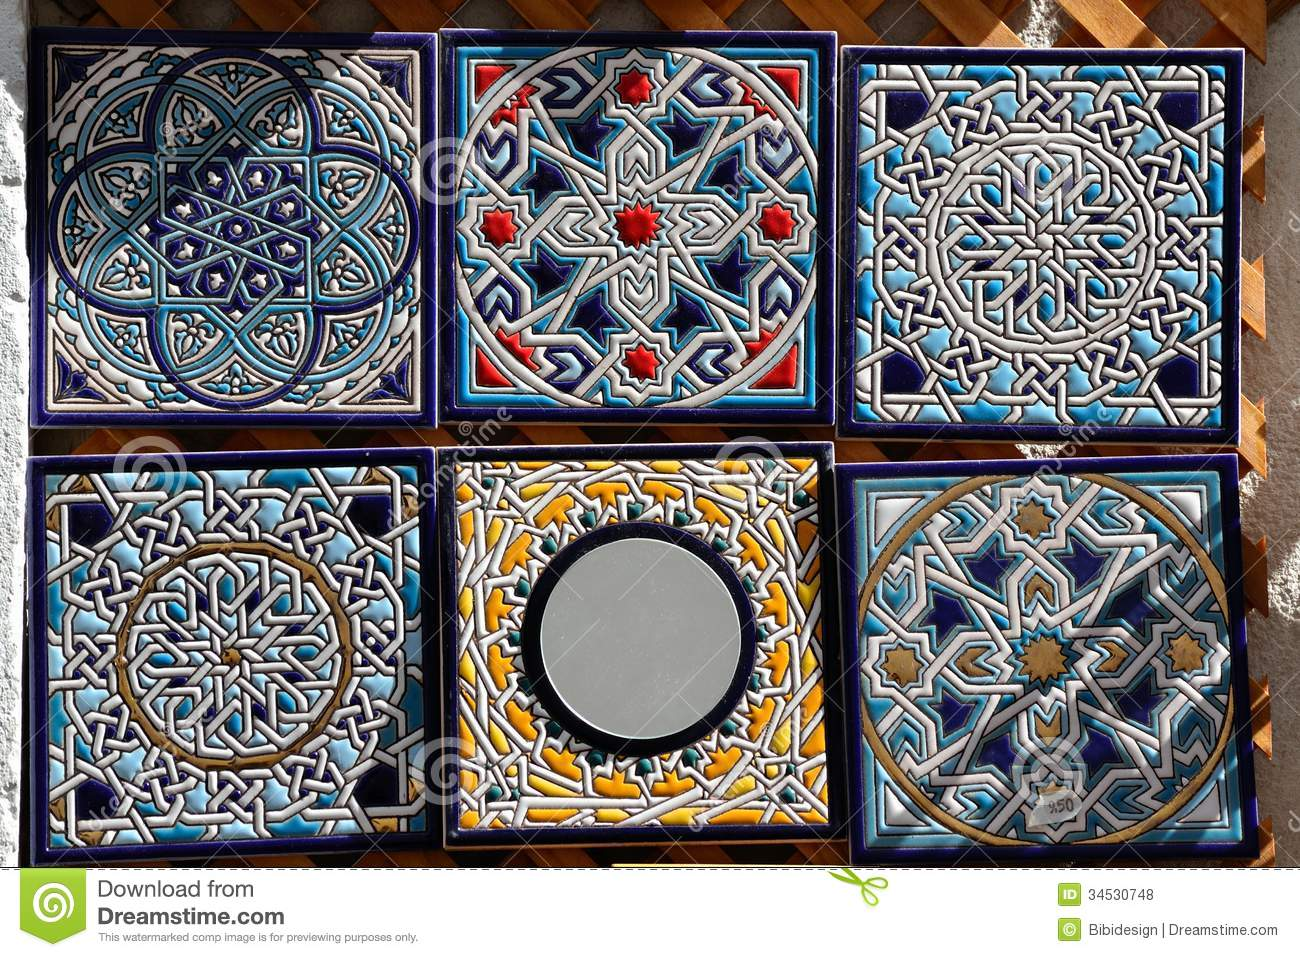 Baldosas Decorativas Decorative Hand Painted Ceramic Tiles For Sale Royalty